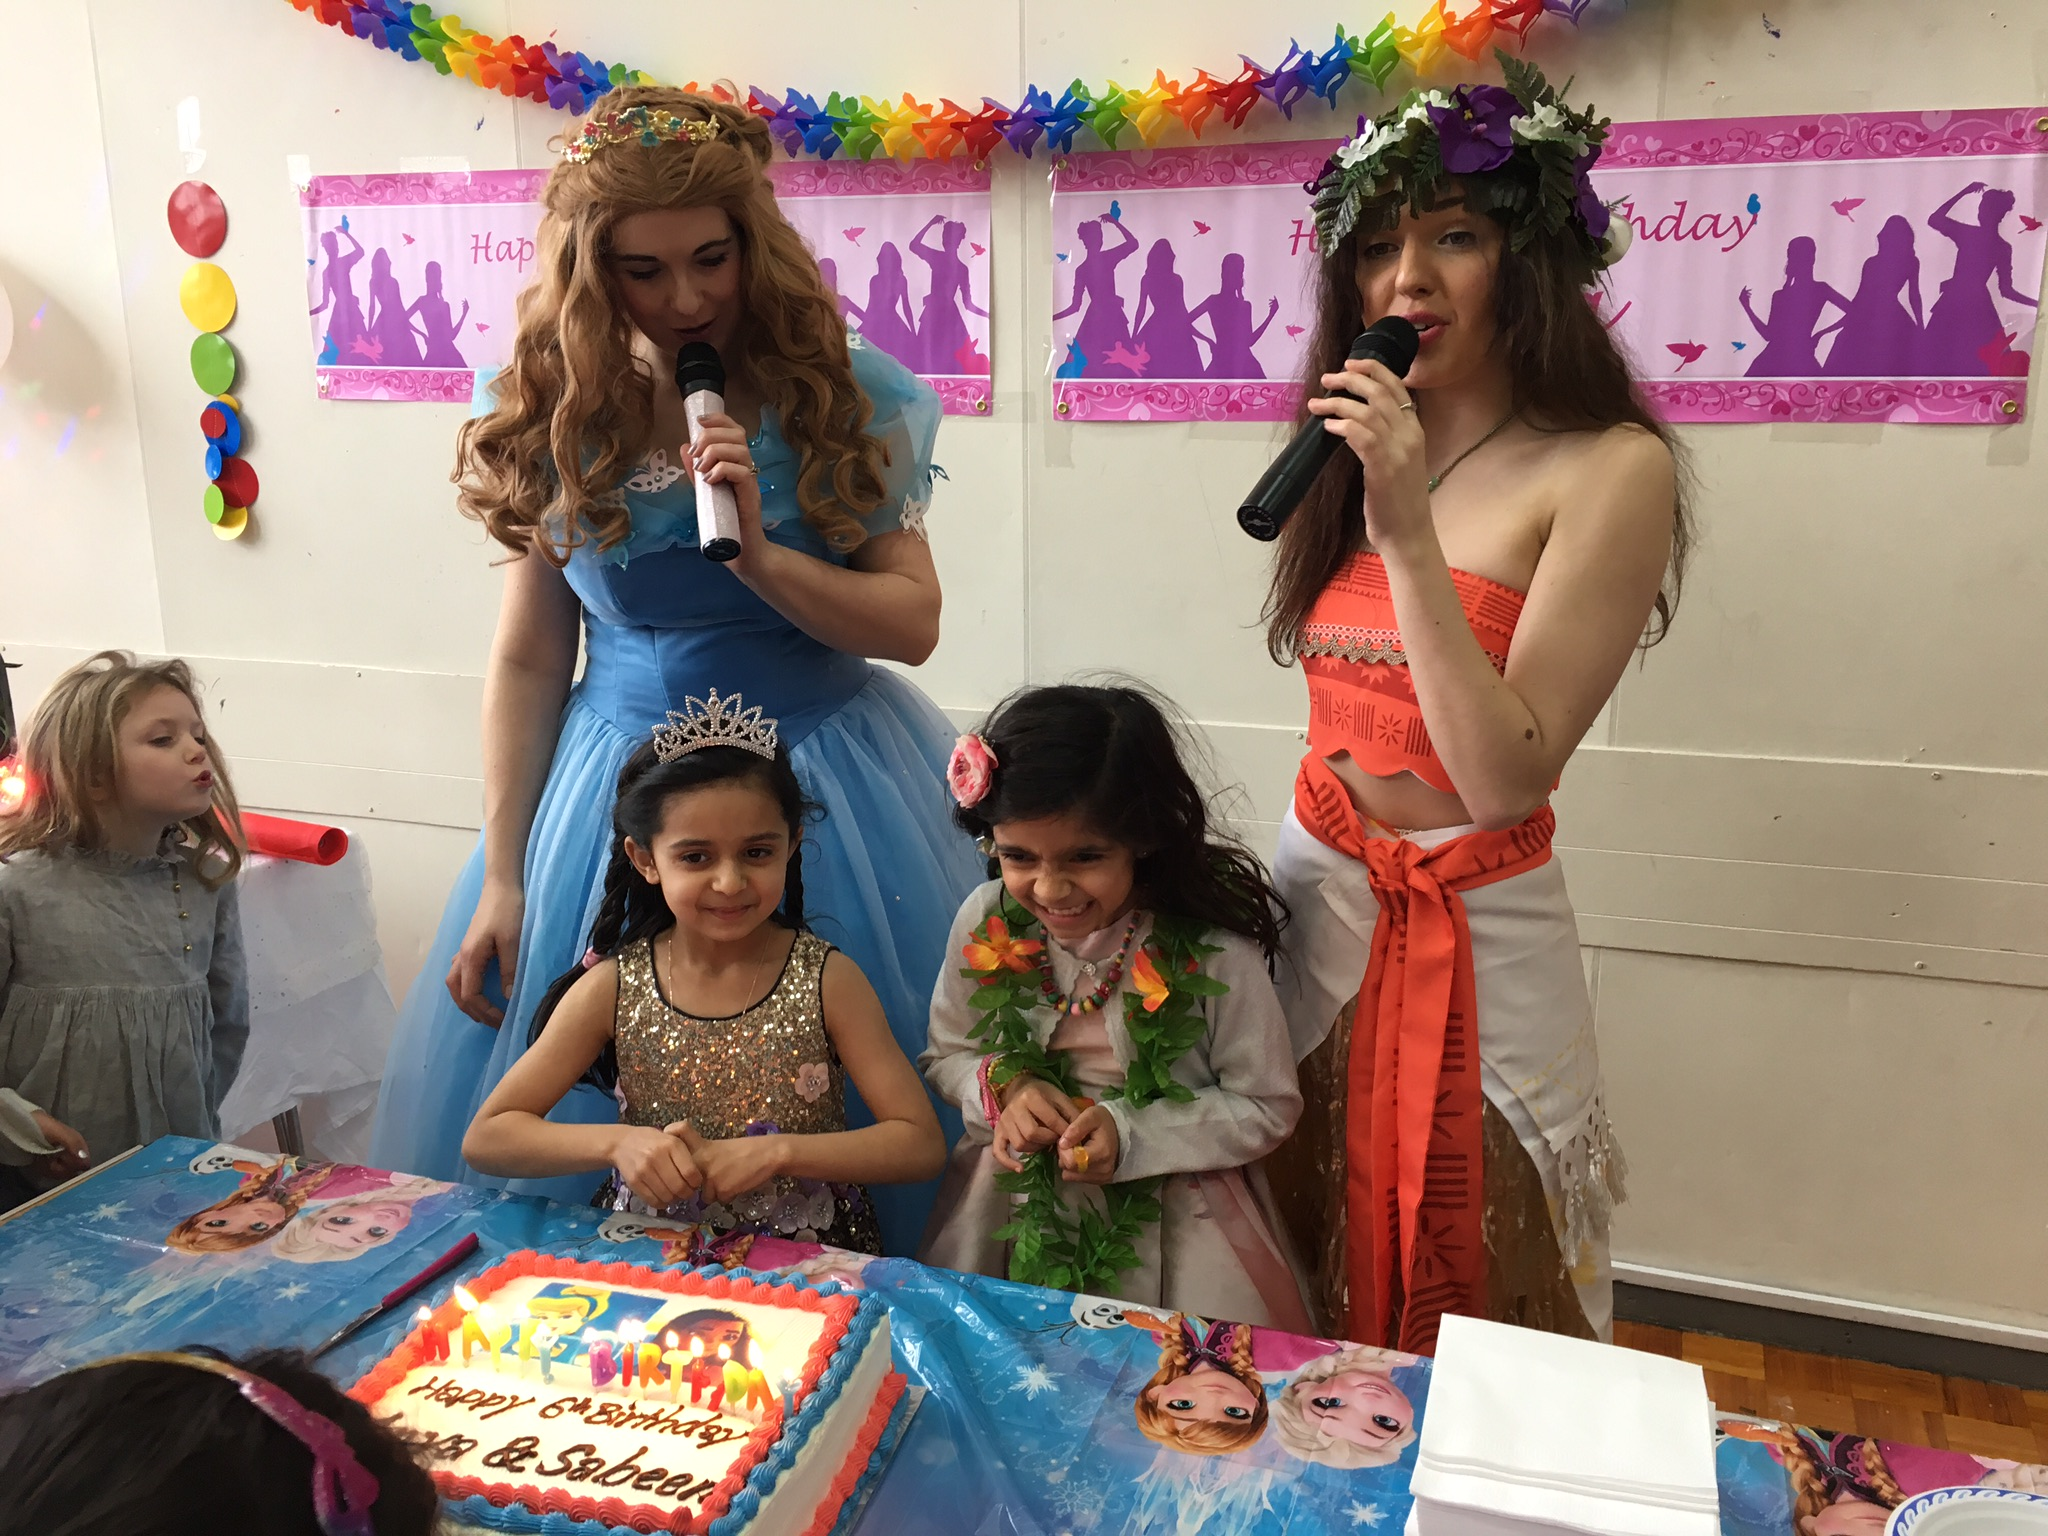 Moana Themed Party Amazing Parties For Boys And Girls - Childrens birthday party etiquette uk